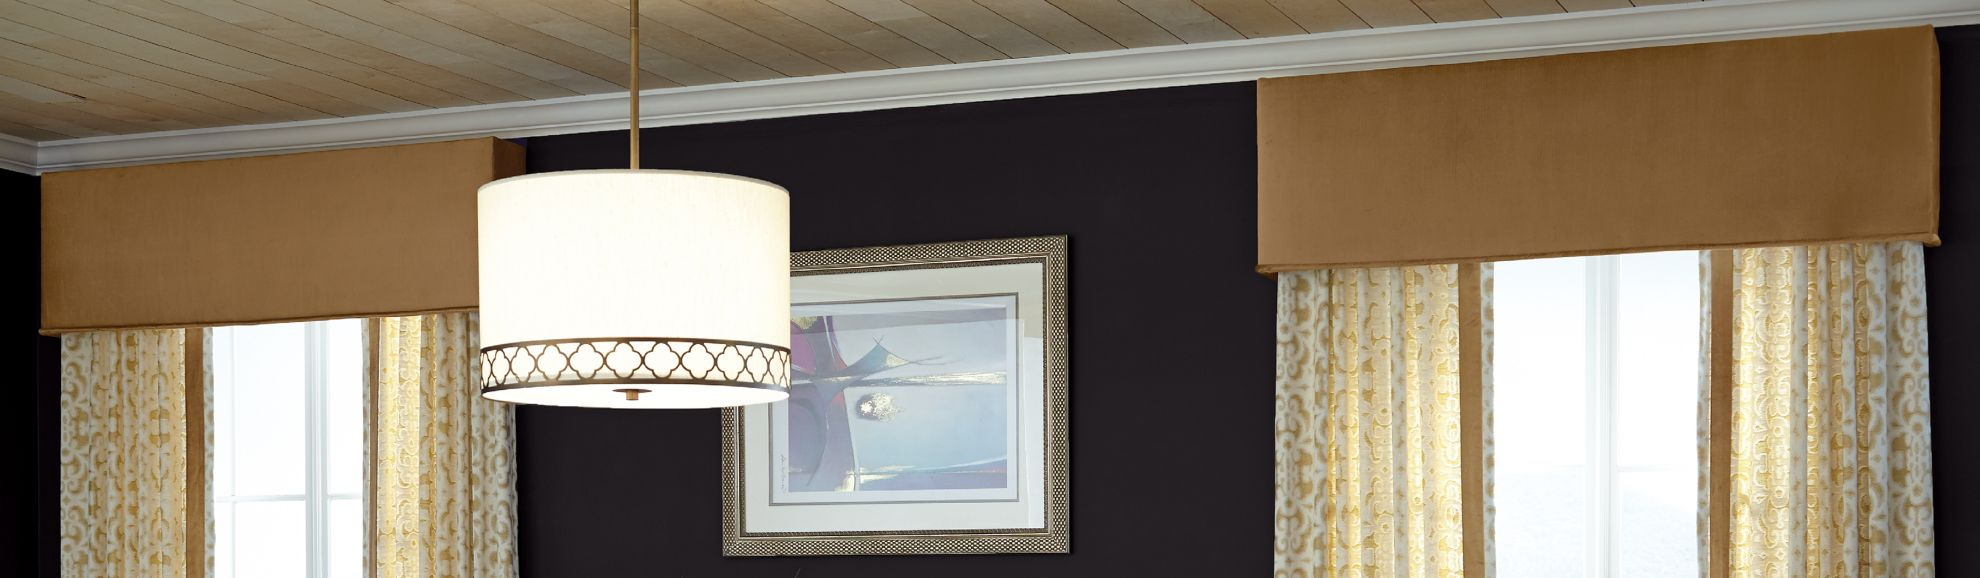 Fabric Cornices - Kinsley Deluxe - Dining Room